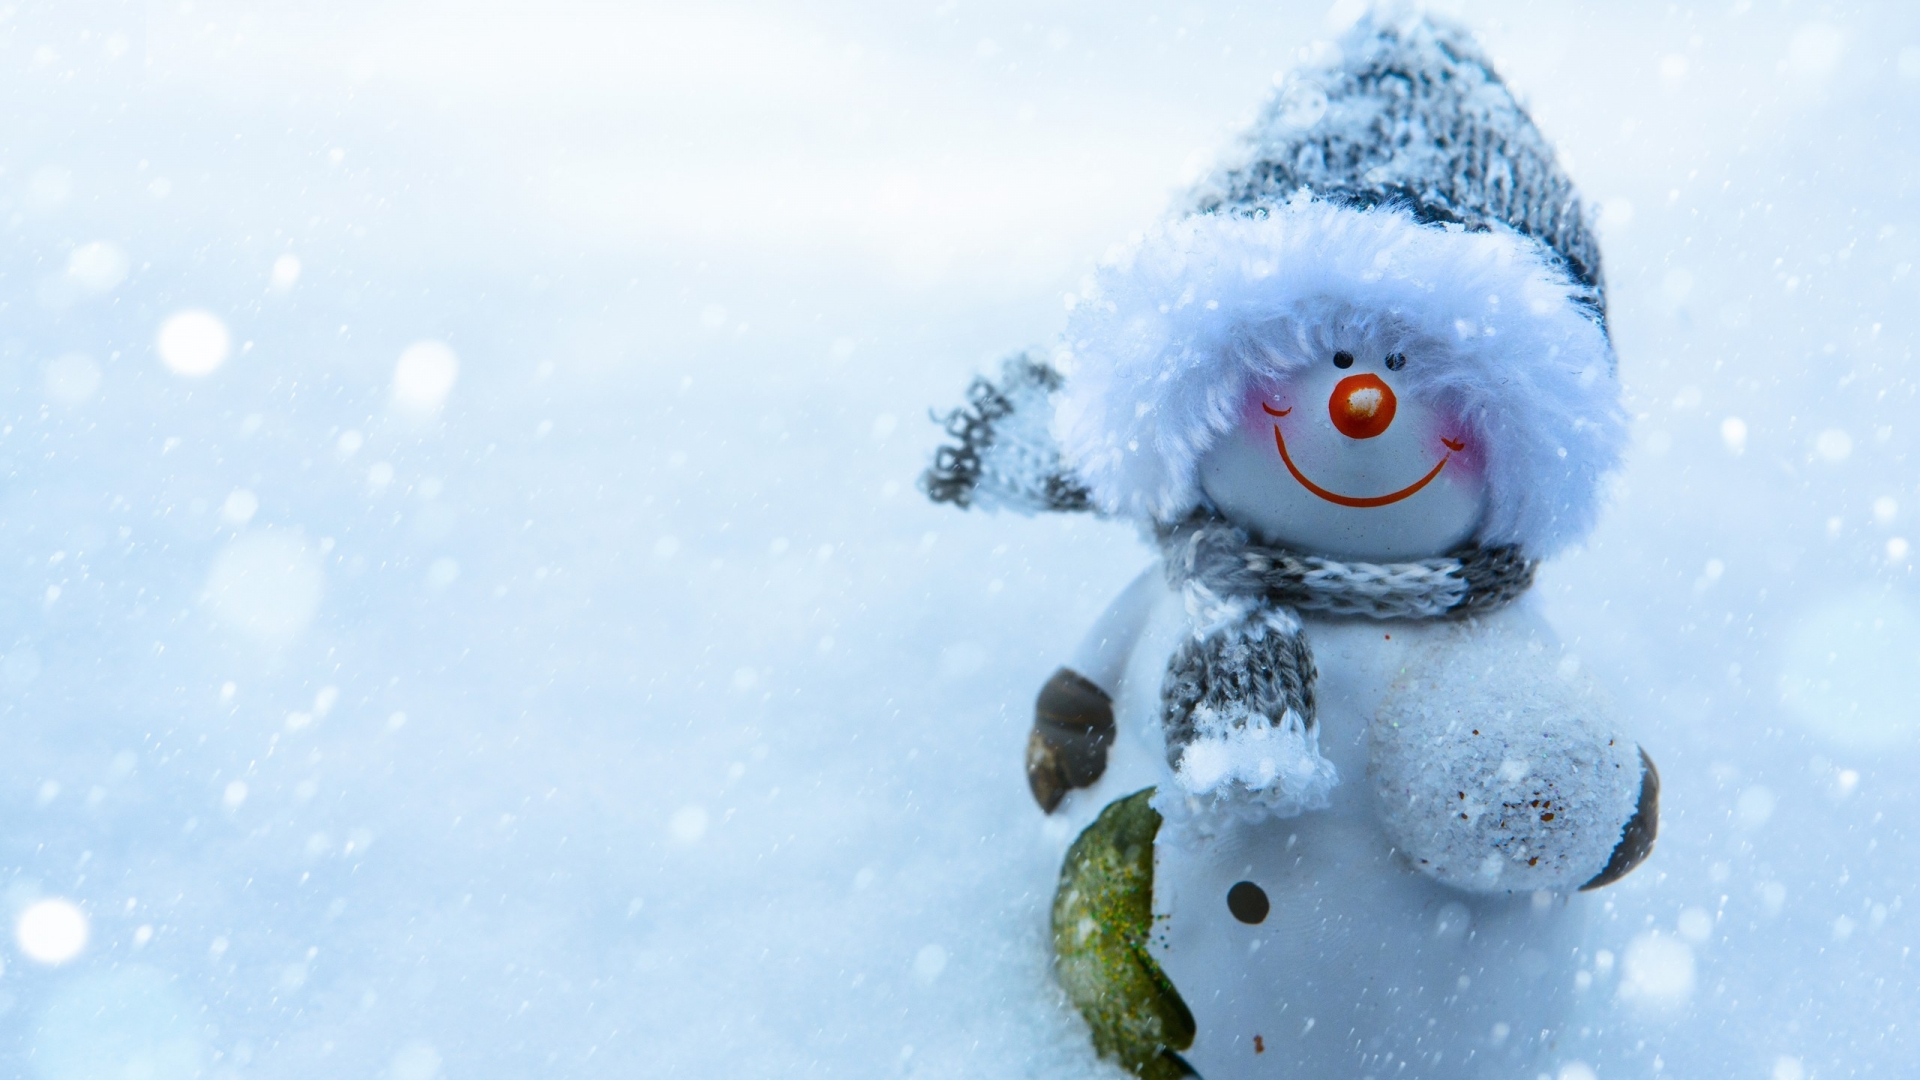 Snowman Smiling for 1920 x 1080 HDTV 1080p resolution